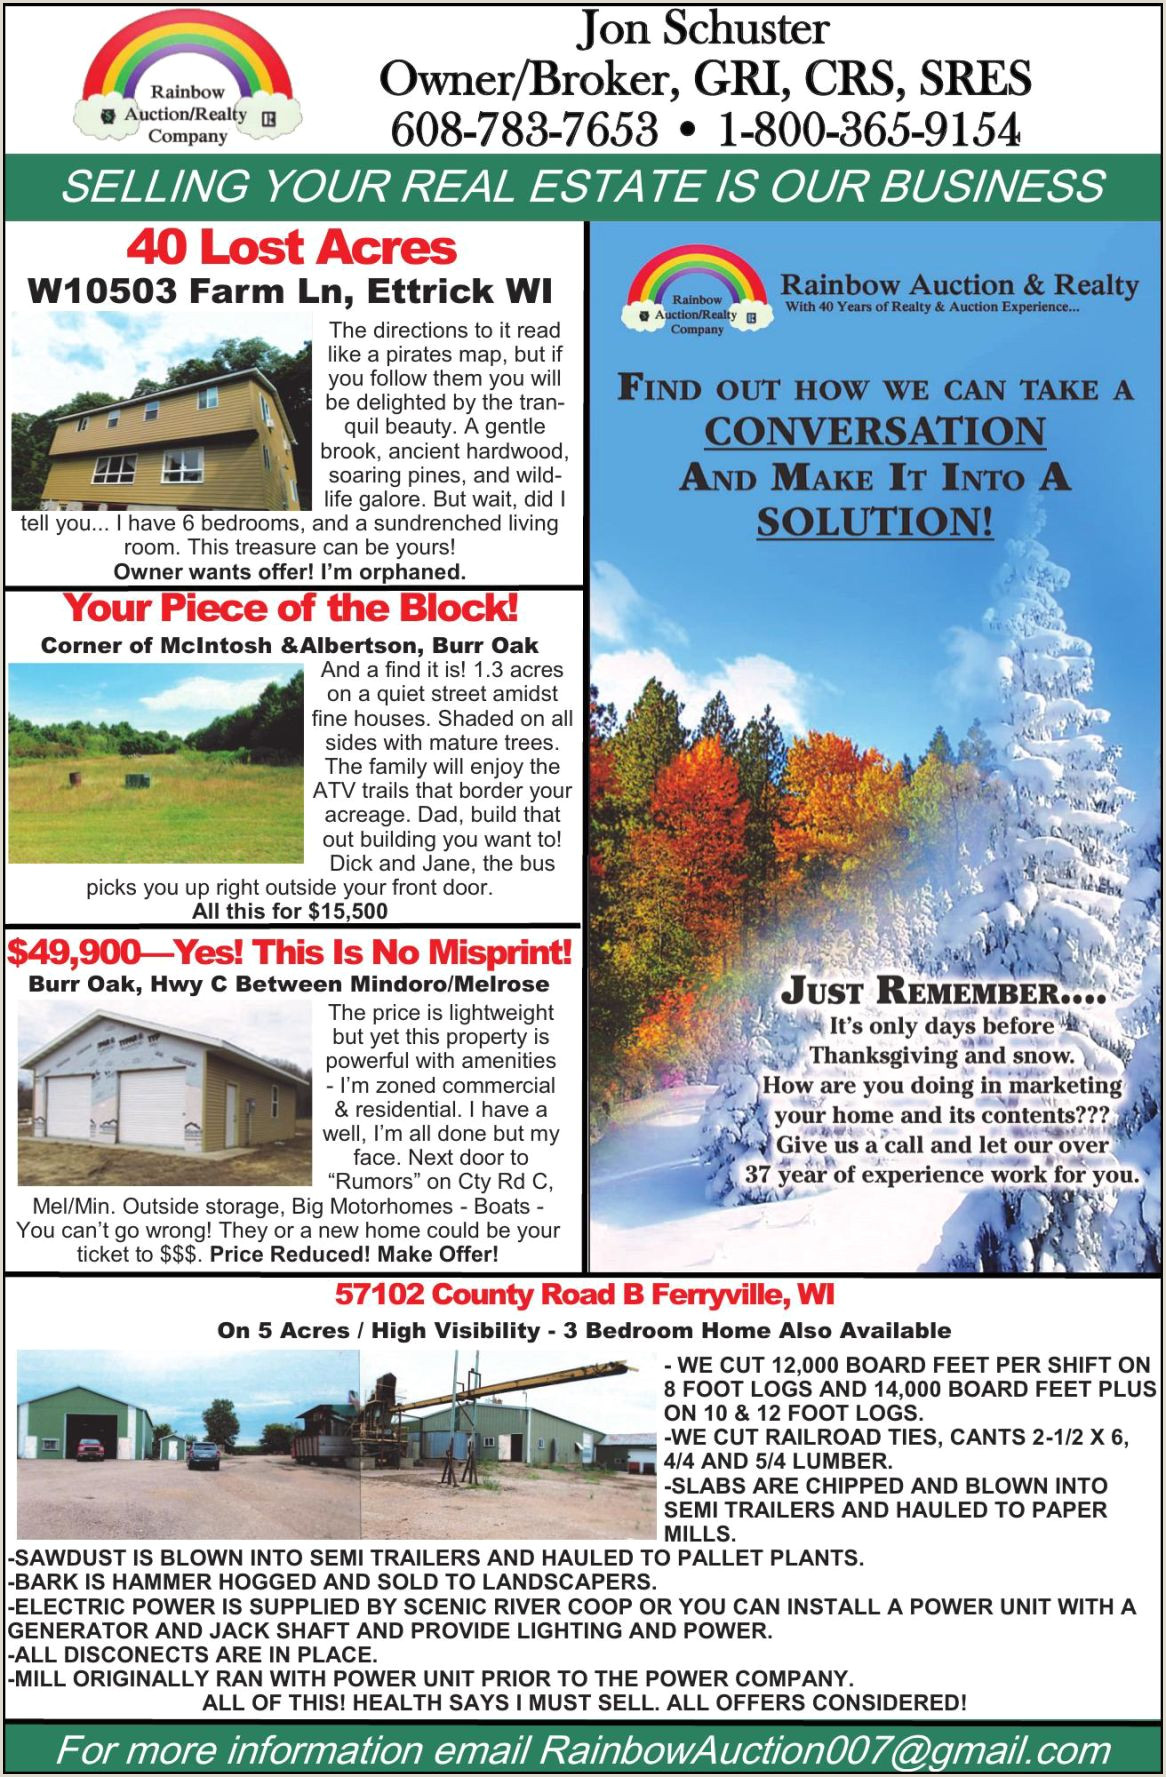 RAINBOW AUCTION SERVICE Ad from 2019 09 29